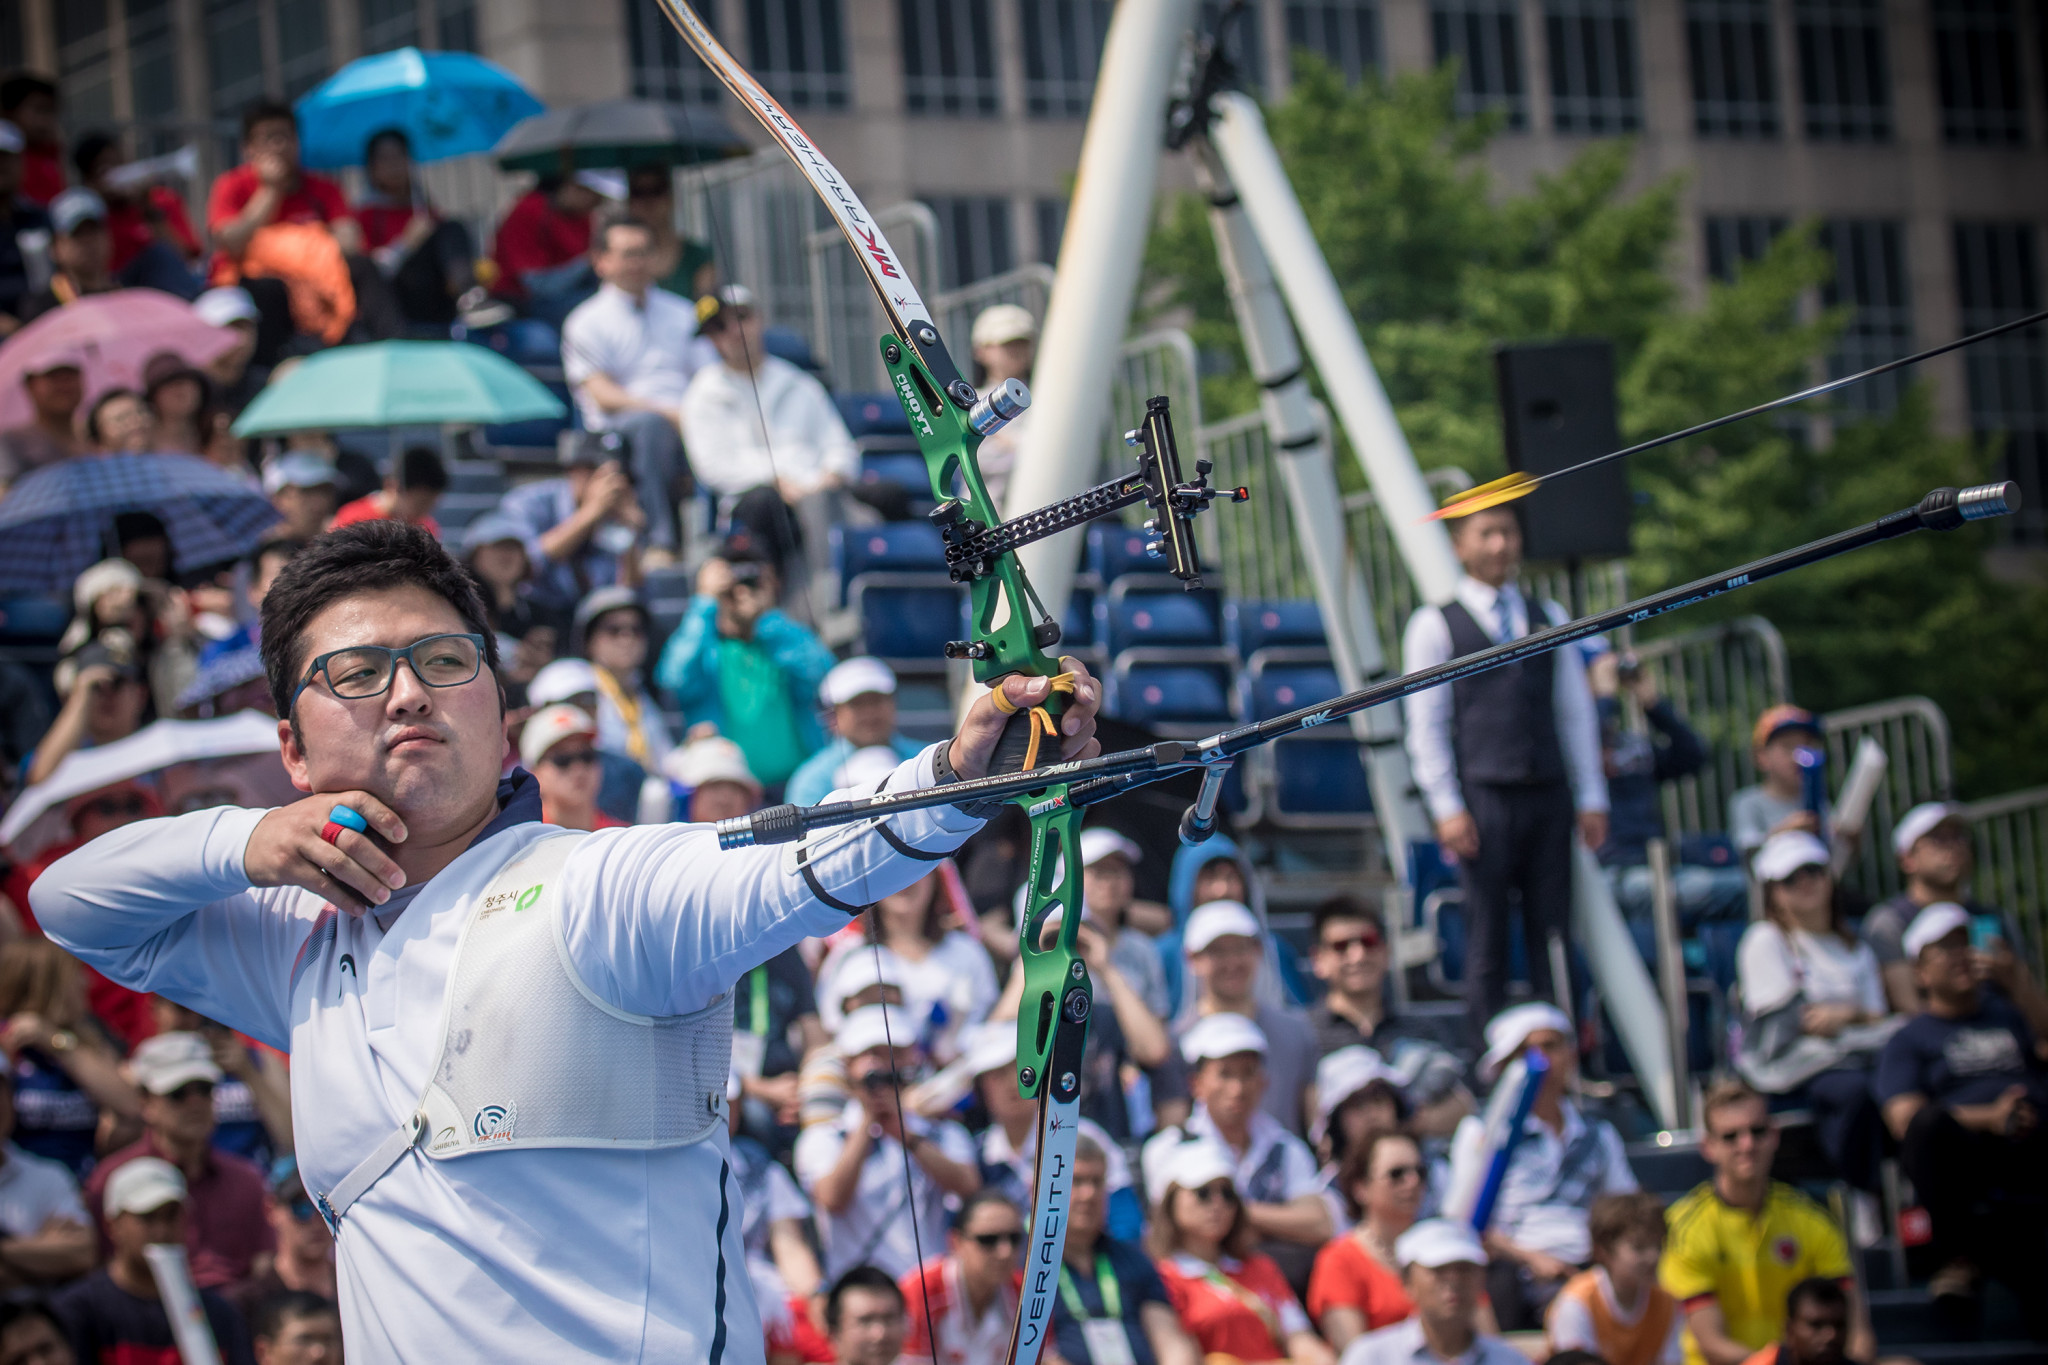 Last year's Archery World Cup season was cancelled due to the COVID-19 pandemic ©Getty Images